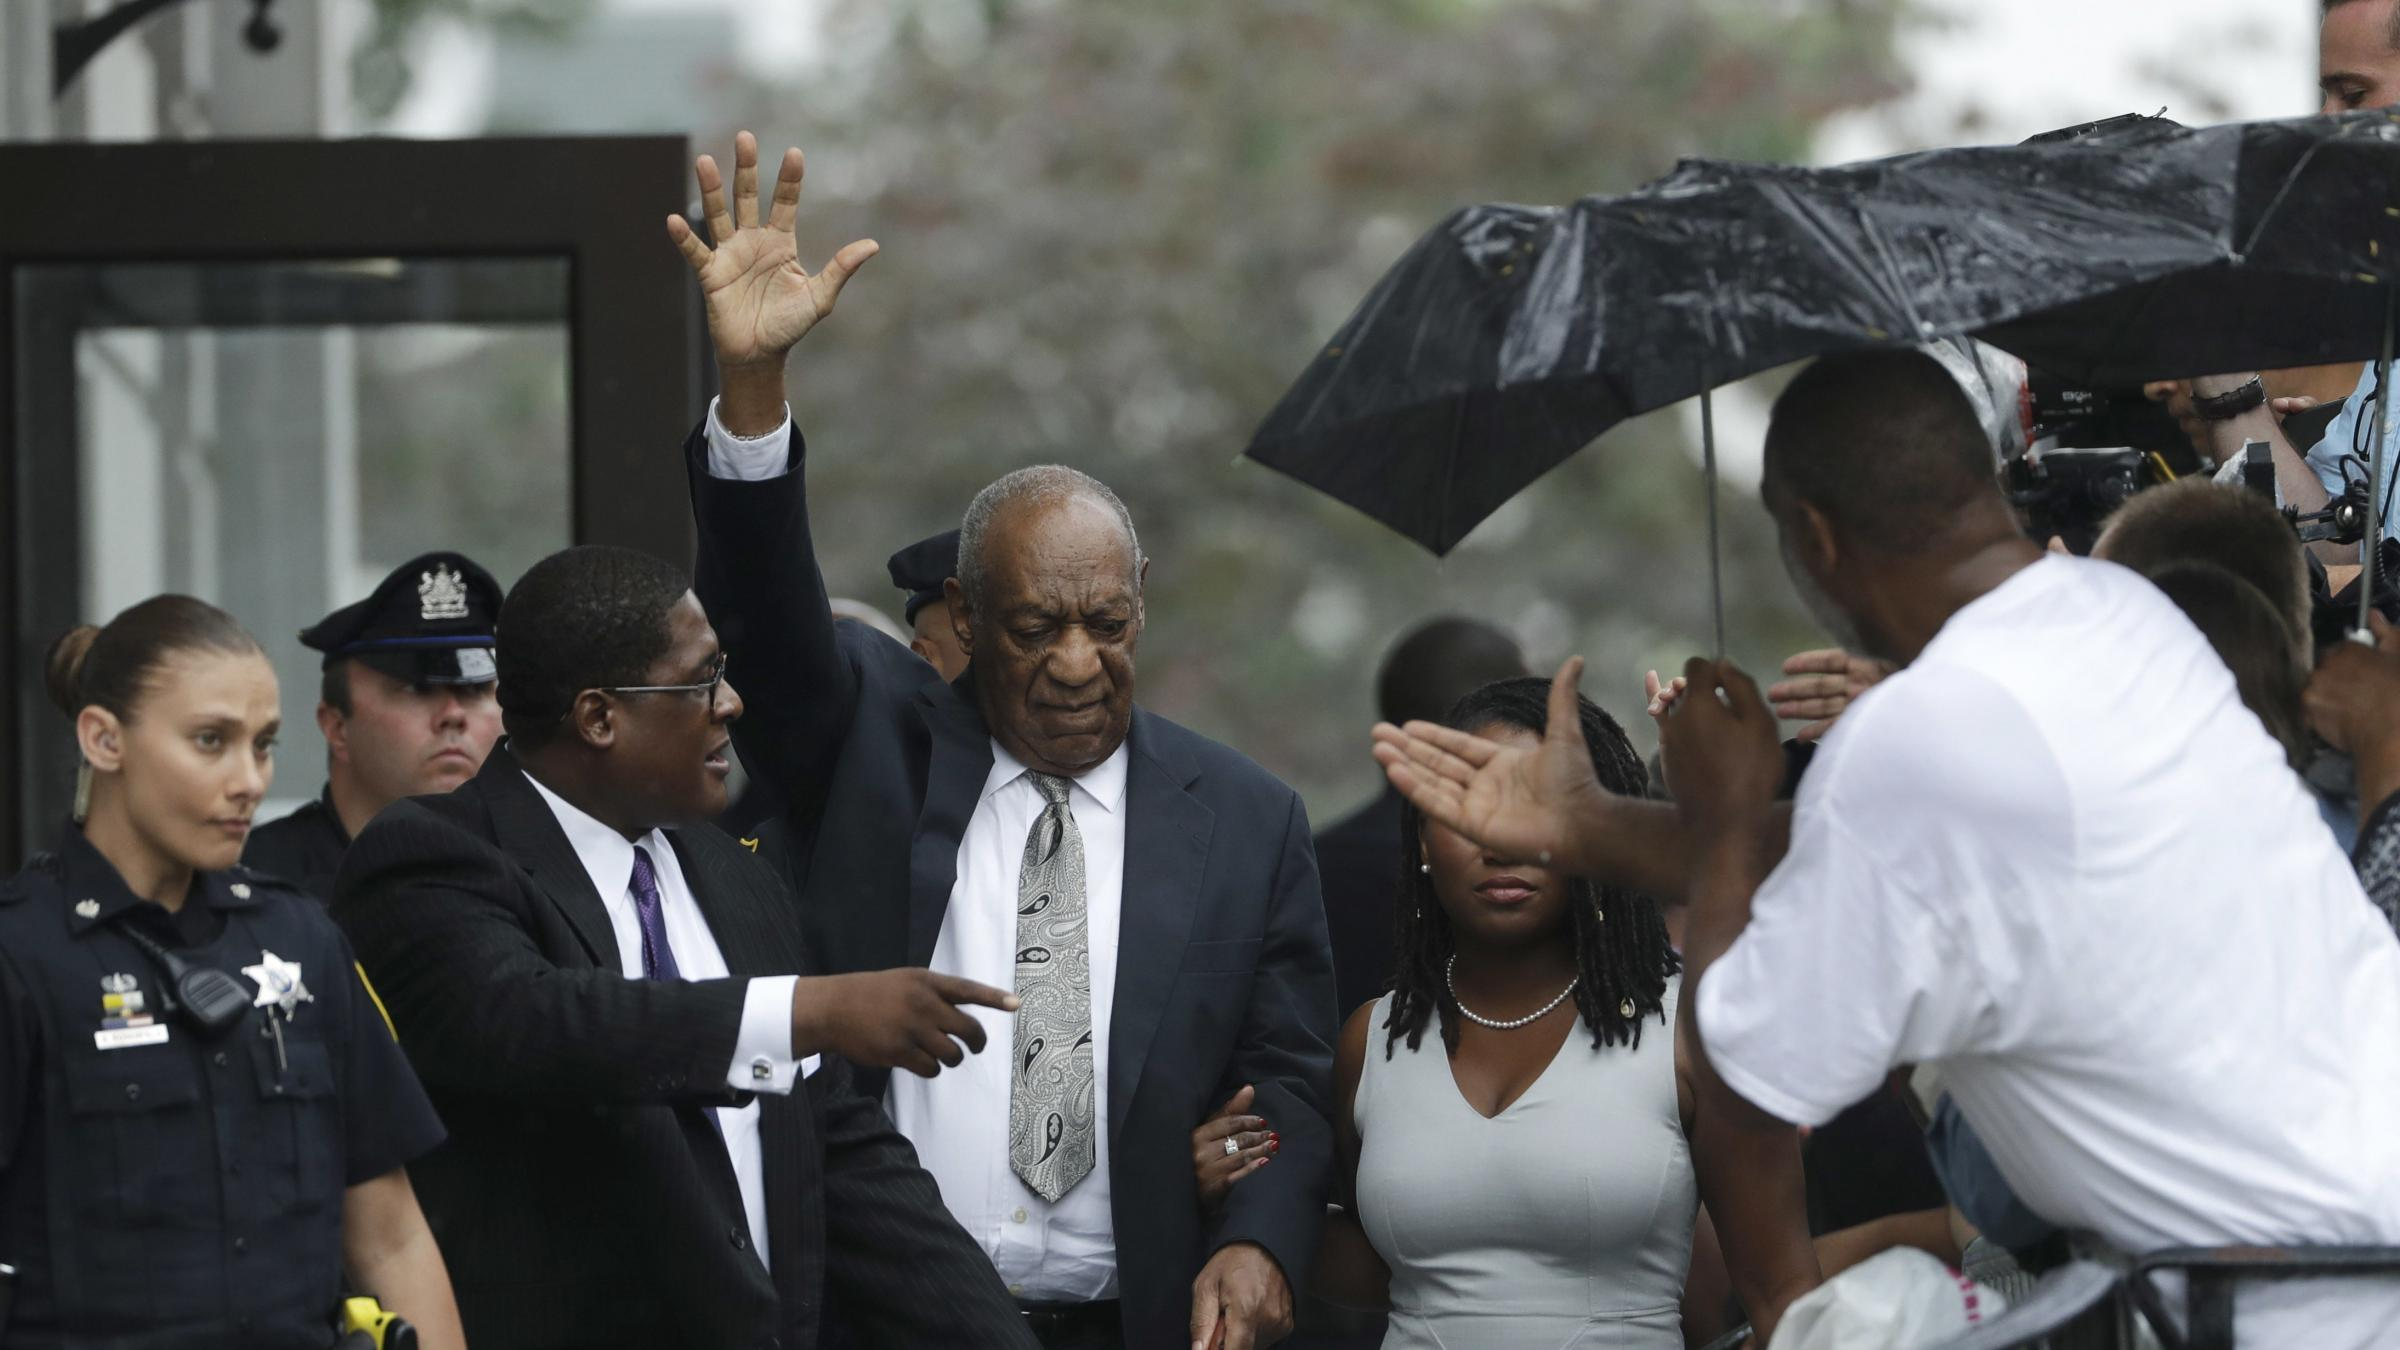 COSBY TRIAL ENDS: Judge Declares Mistrial After Jury Fails to Return Verdict